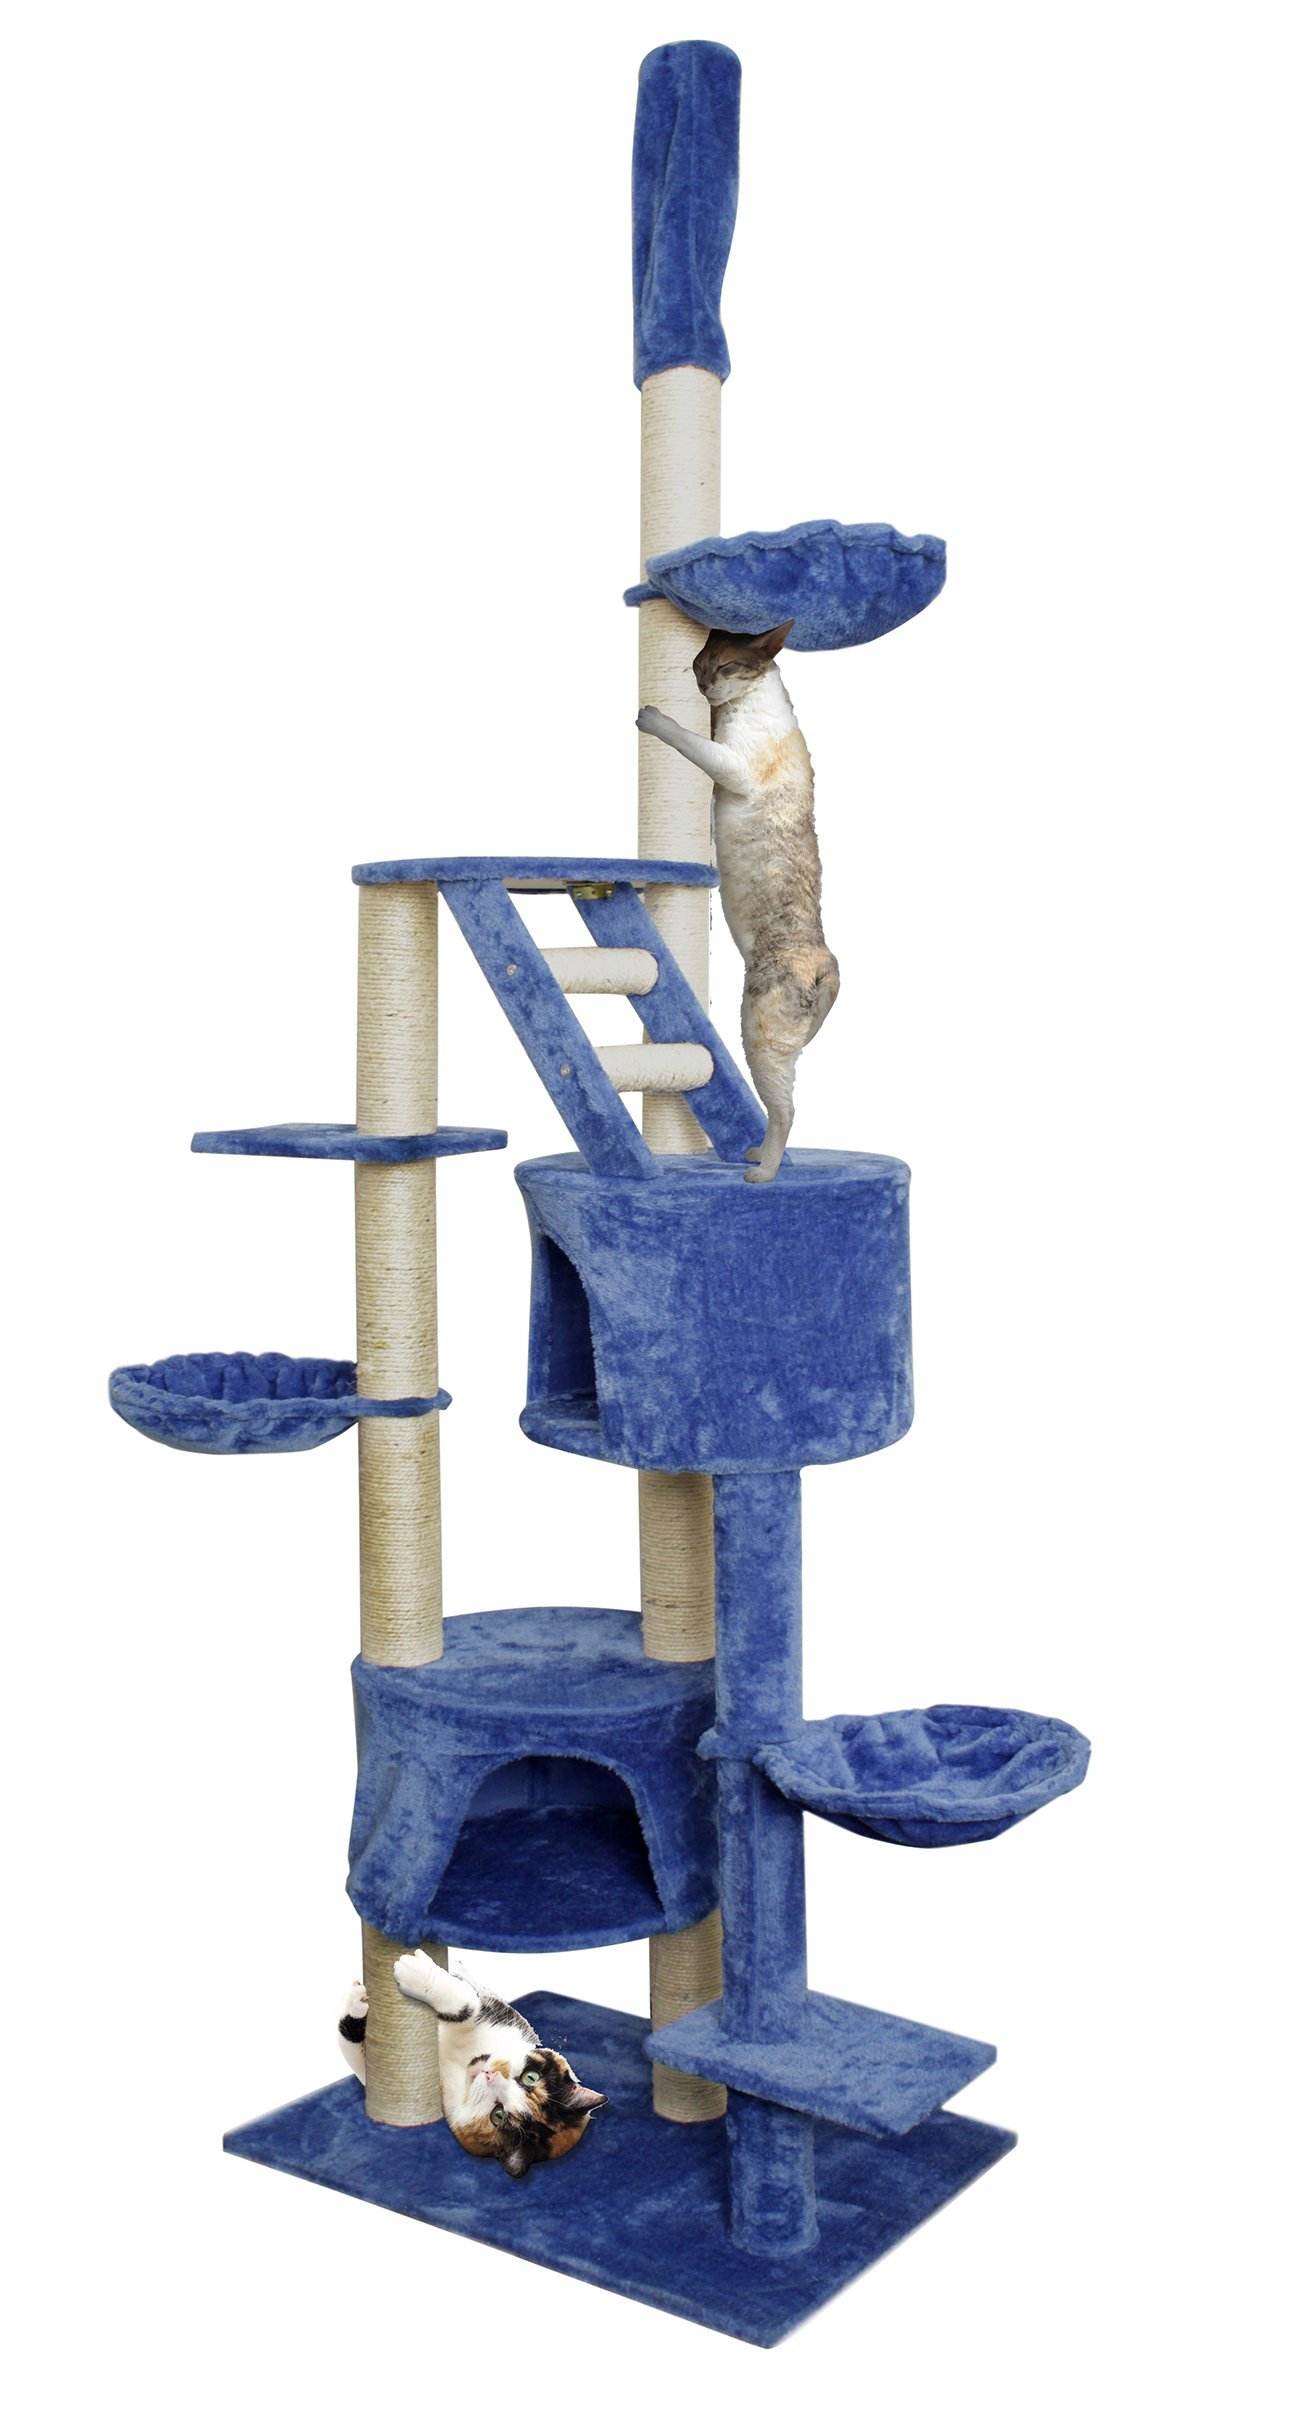 Paws & Pals 28x20x101 Cat Tree House w/Scartching Post Towers, Hammock Beds, Pet Toy Balls, Multi Level, 11 Level Condo w/Tunnels & Stairs - Blue & White